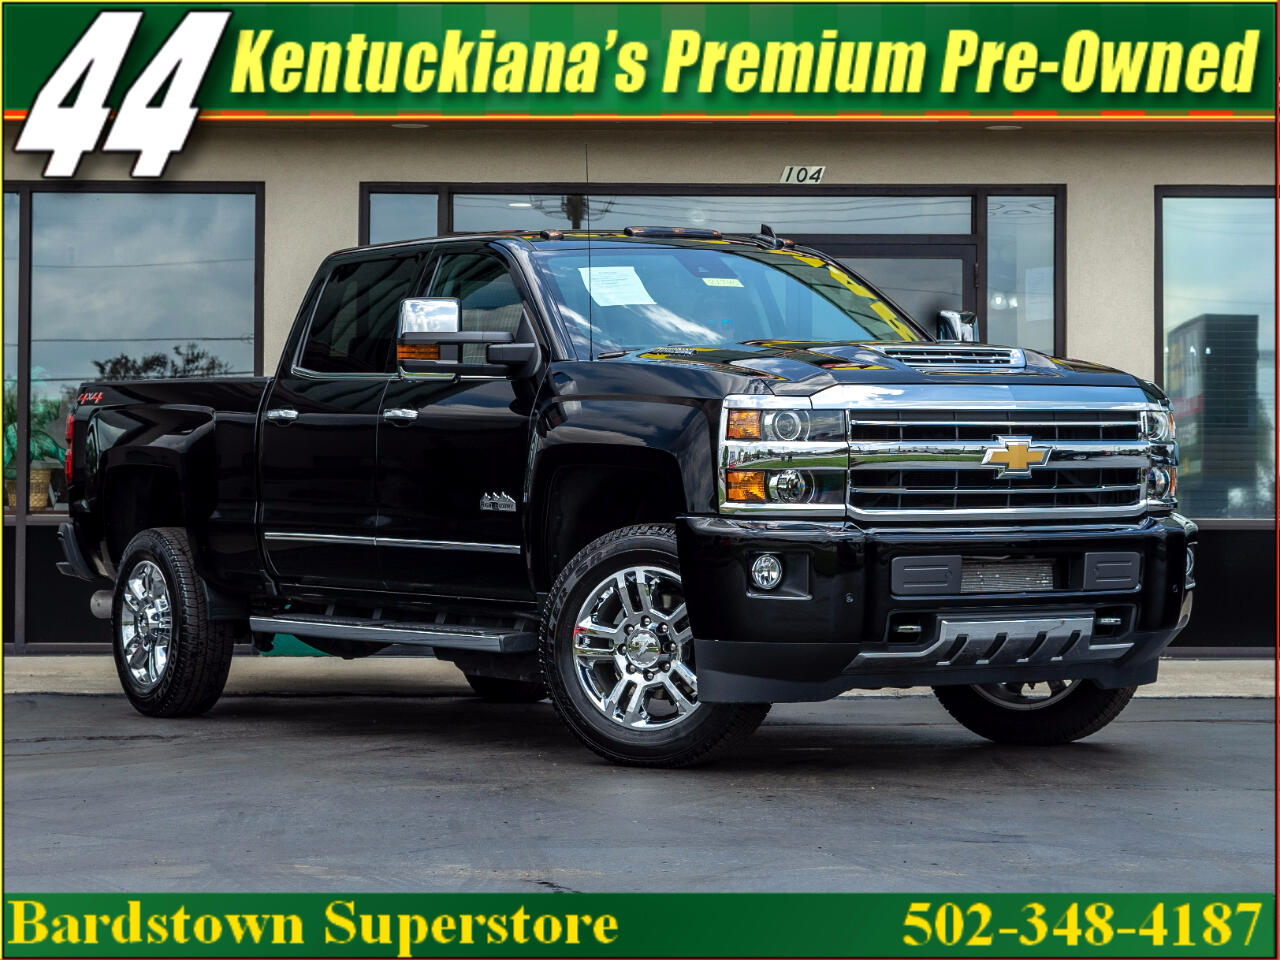 2018 Chevrolet Silverado 2500HD High Country 4WD